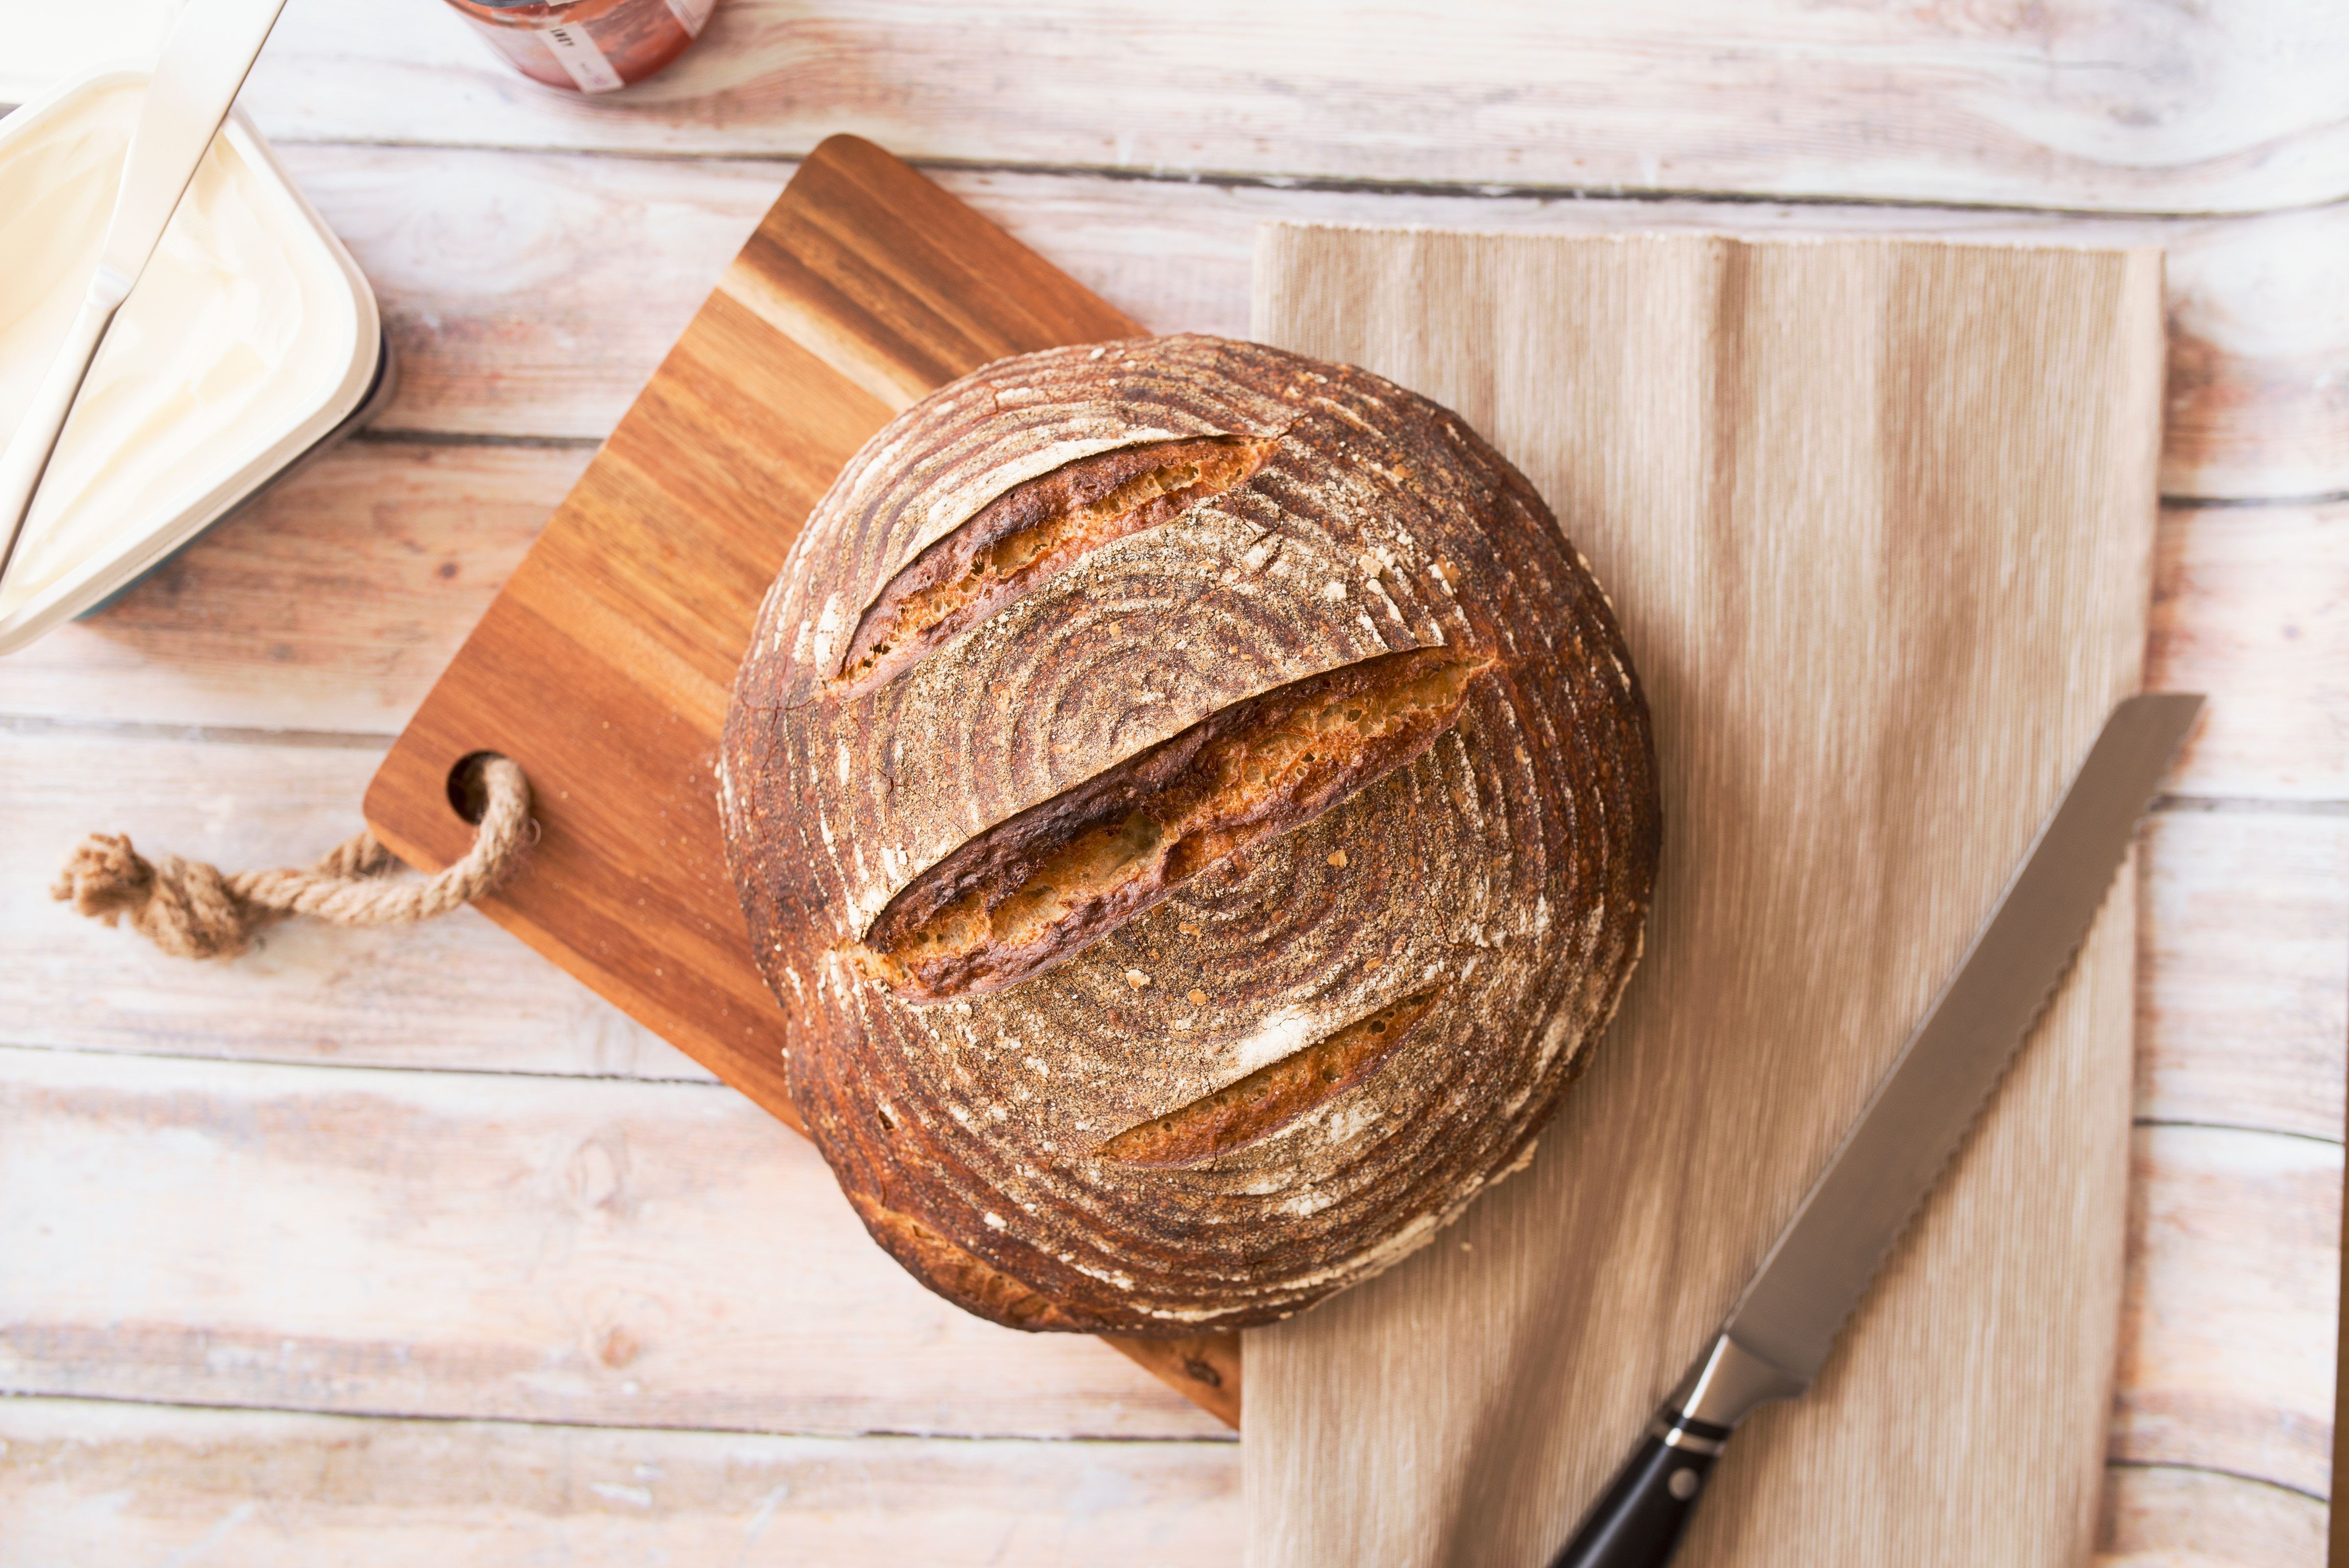 An in-depth review of the best cutting boards available in 2019.